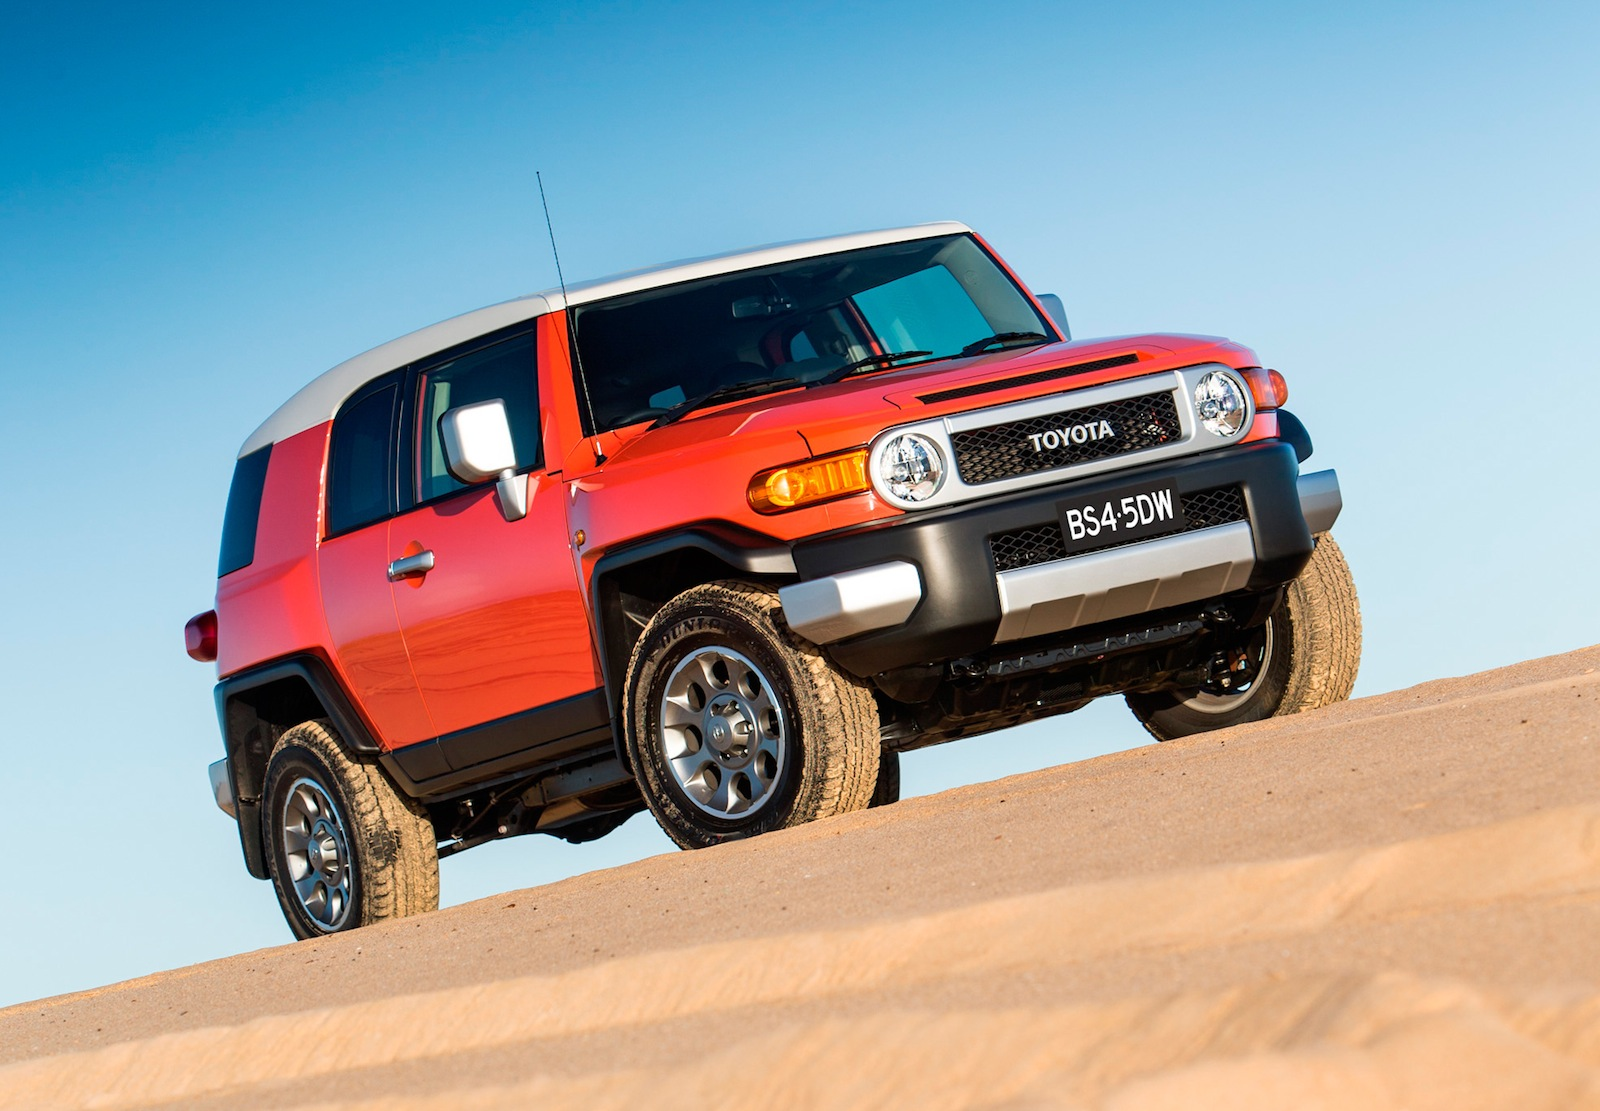 Toyota Fj Cruiser Fuel Range Extended 4x4 Driving Aid